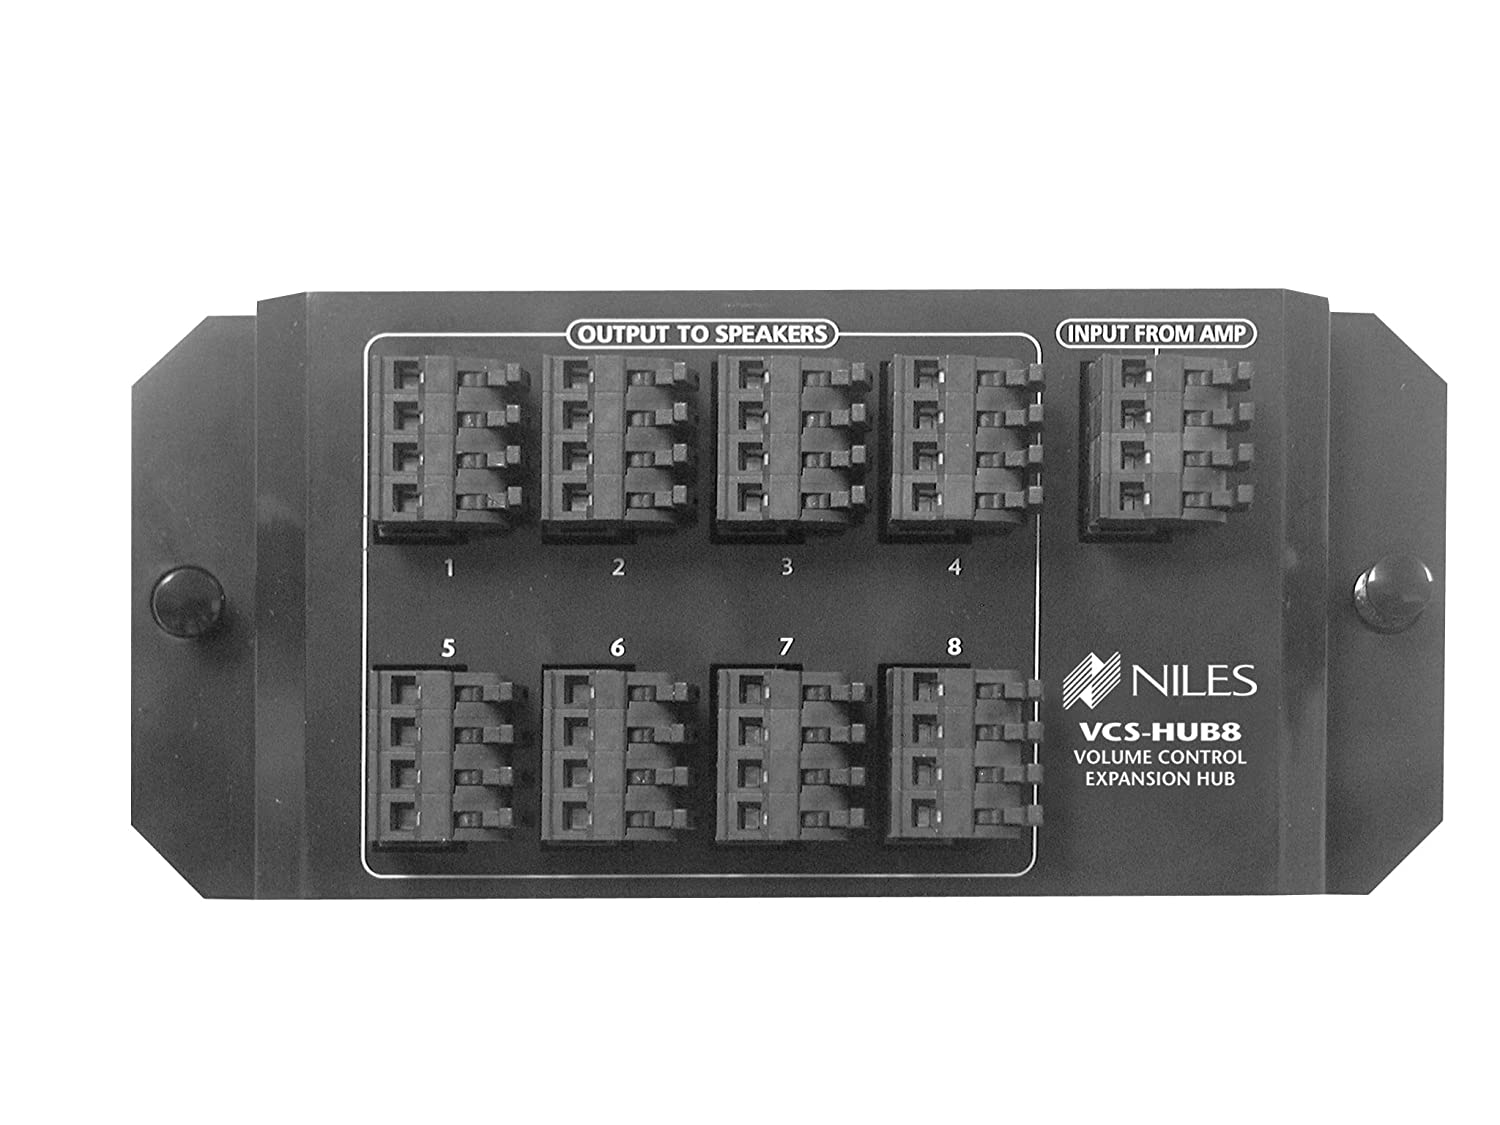 Niles Vcs Hub8 Volume Control Speaker Distribution Hub Structured Wiring Whole Home Audio Theater